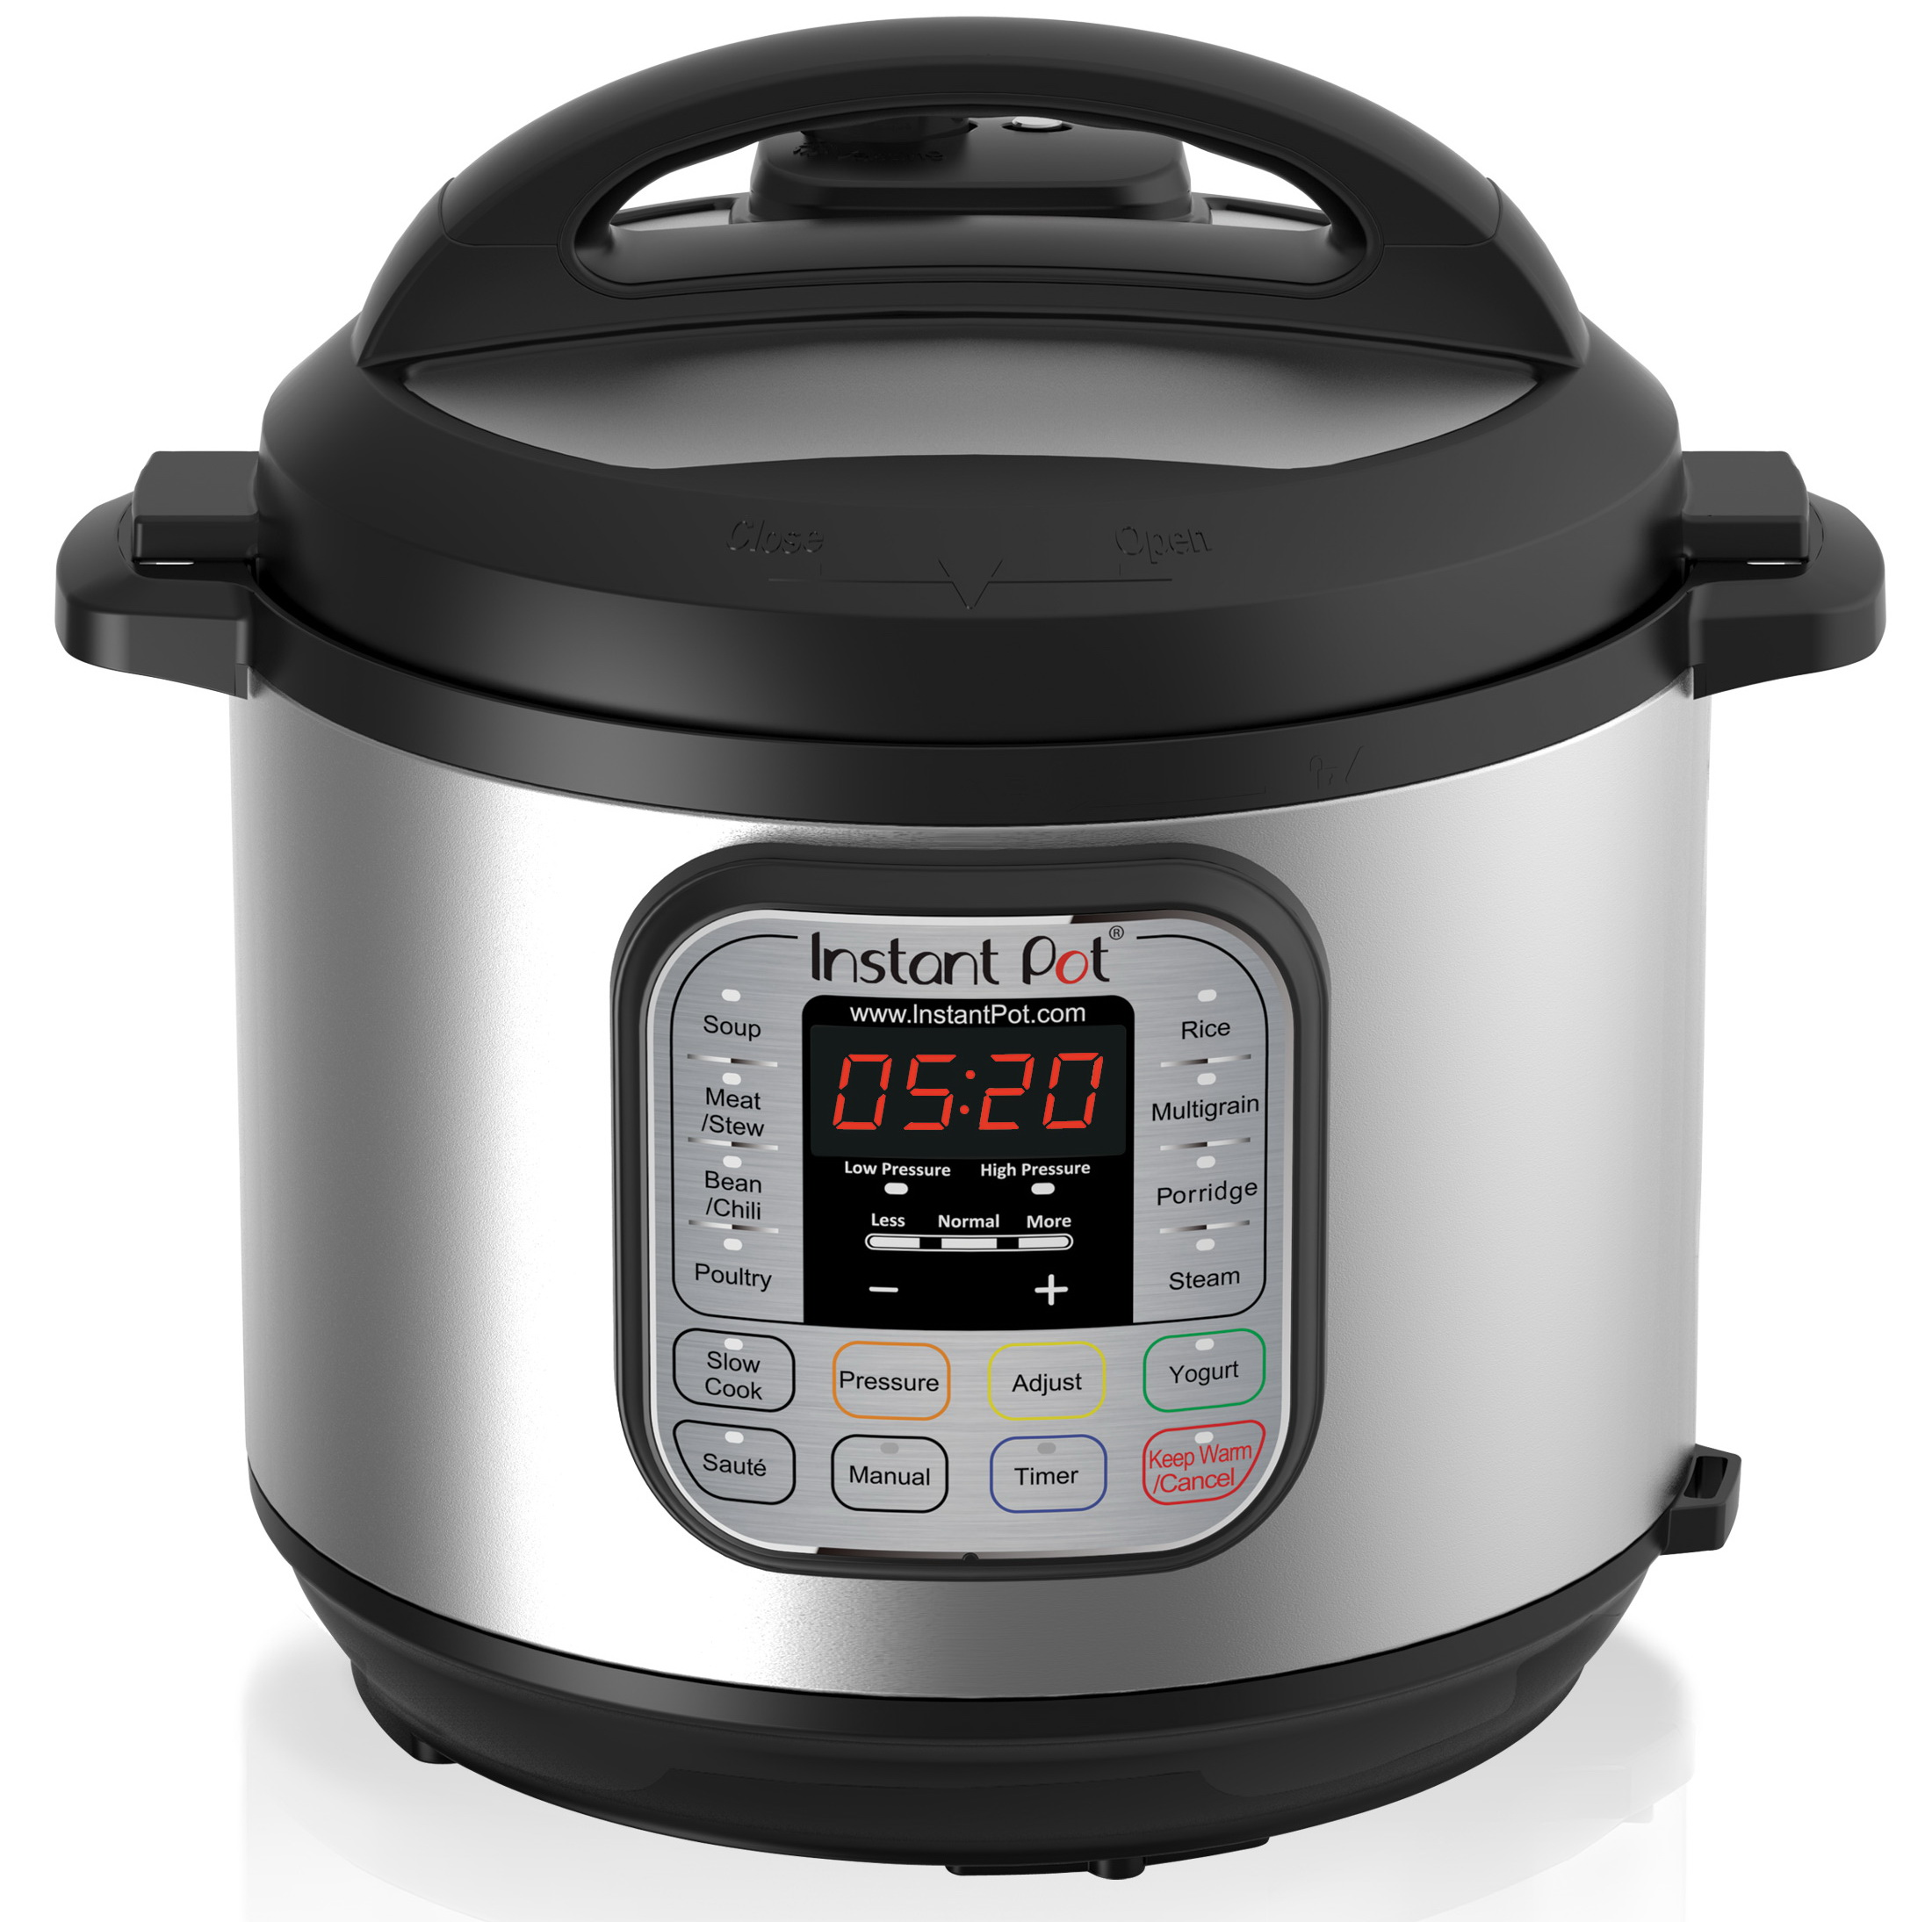 Instant Pot IP-DUO80